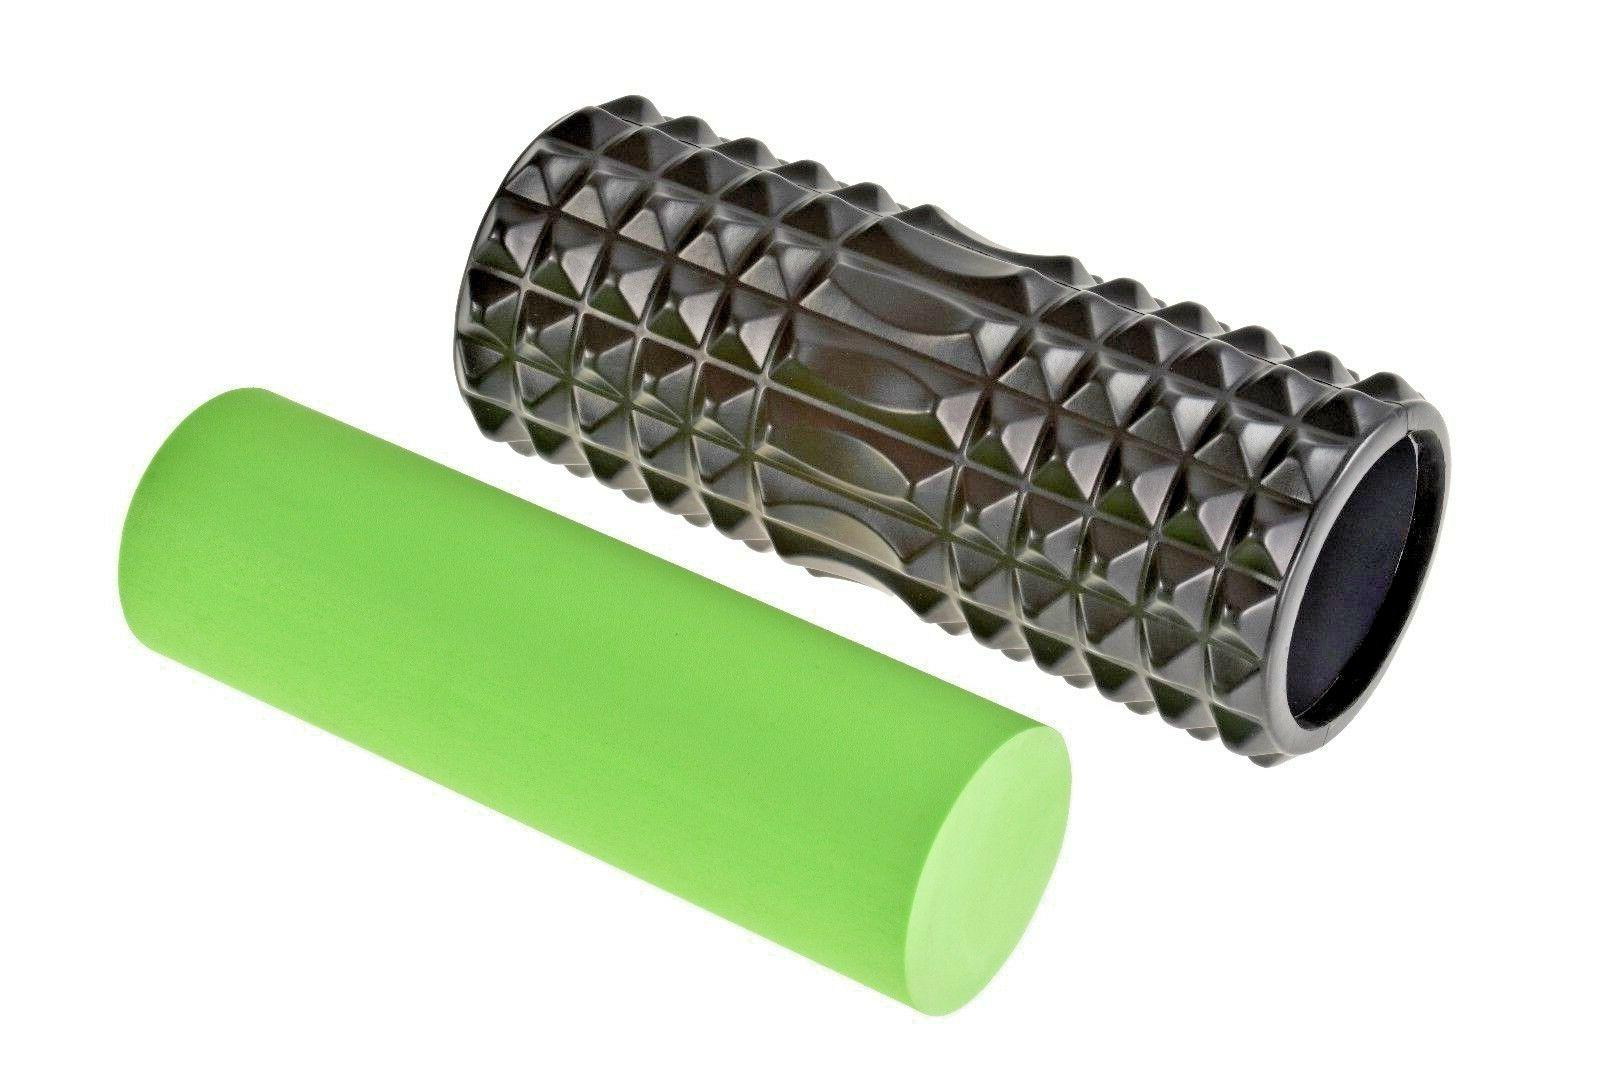 2 in1 Foam Set, Back Rollers for Workout Exercises, Shipping